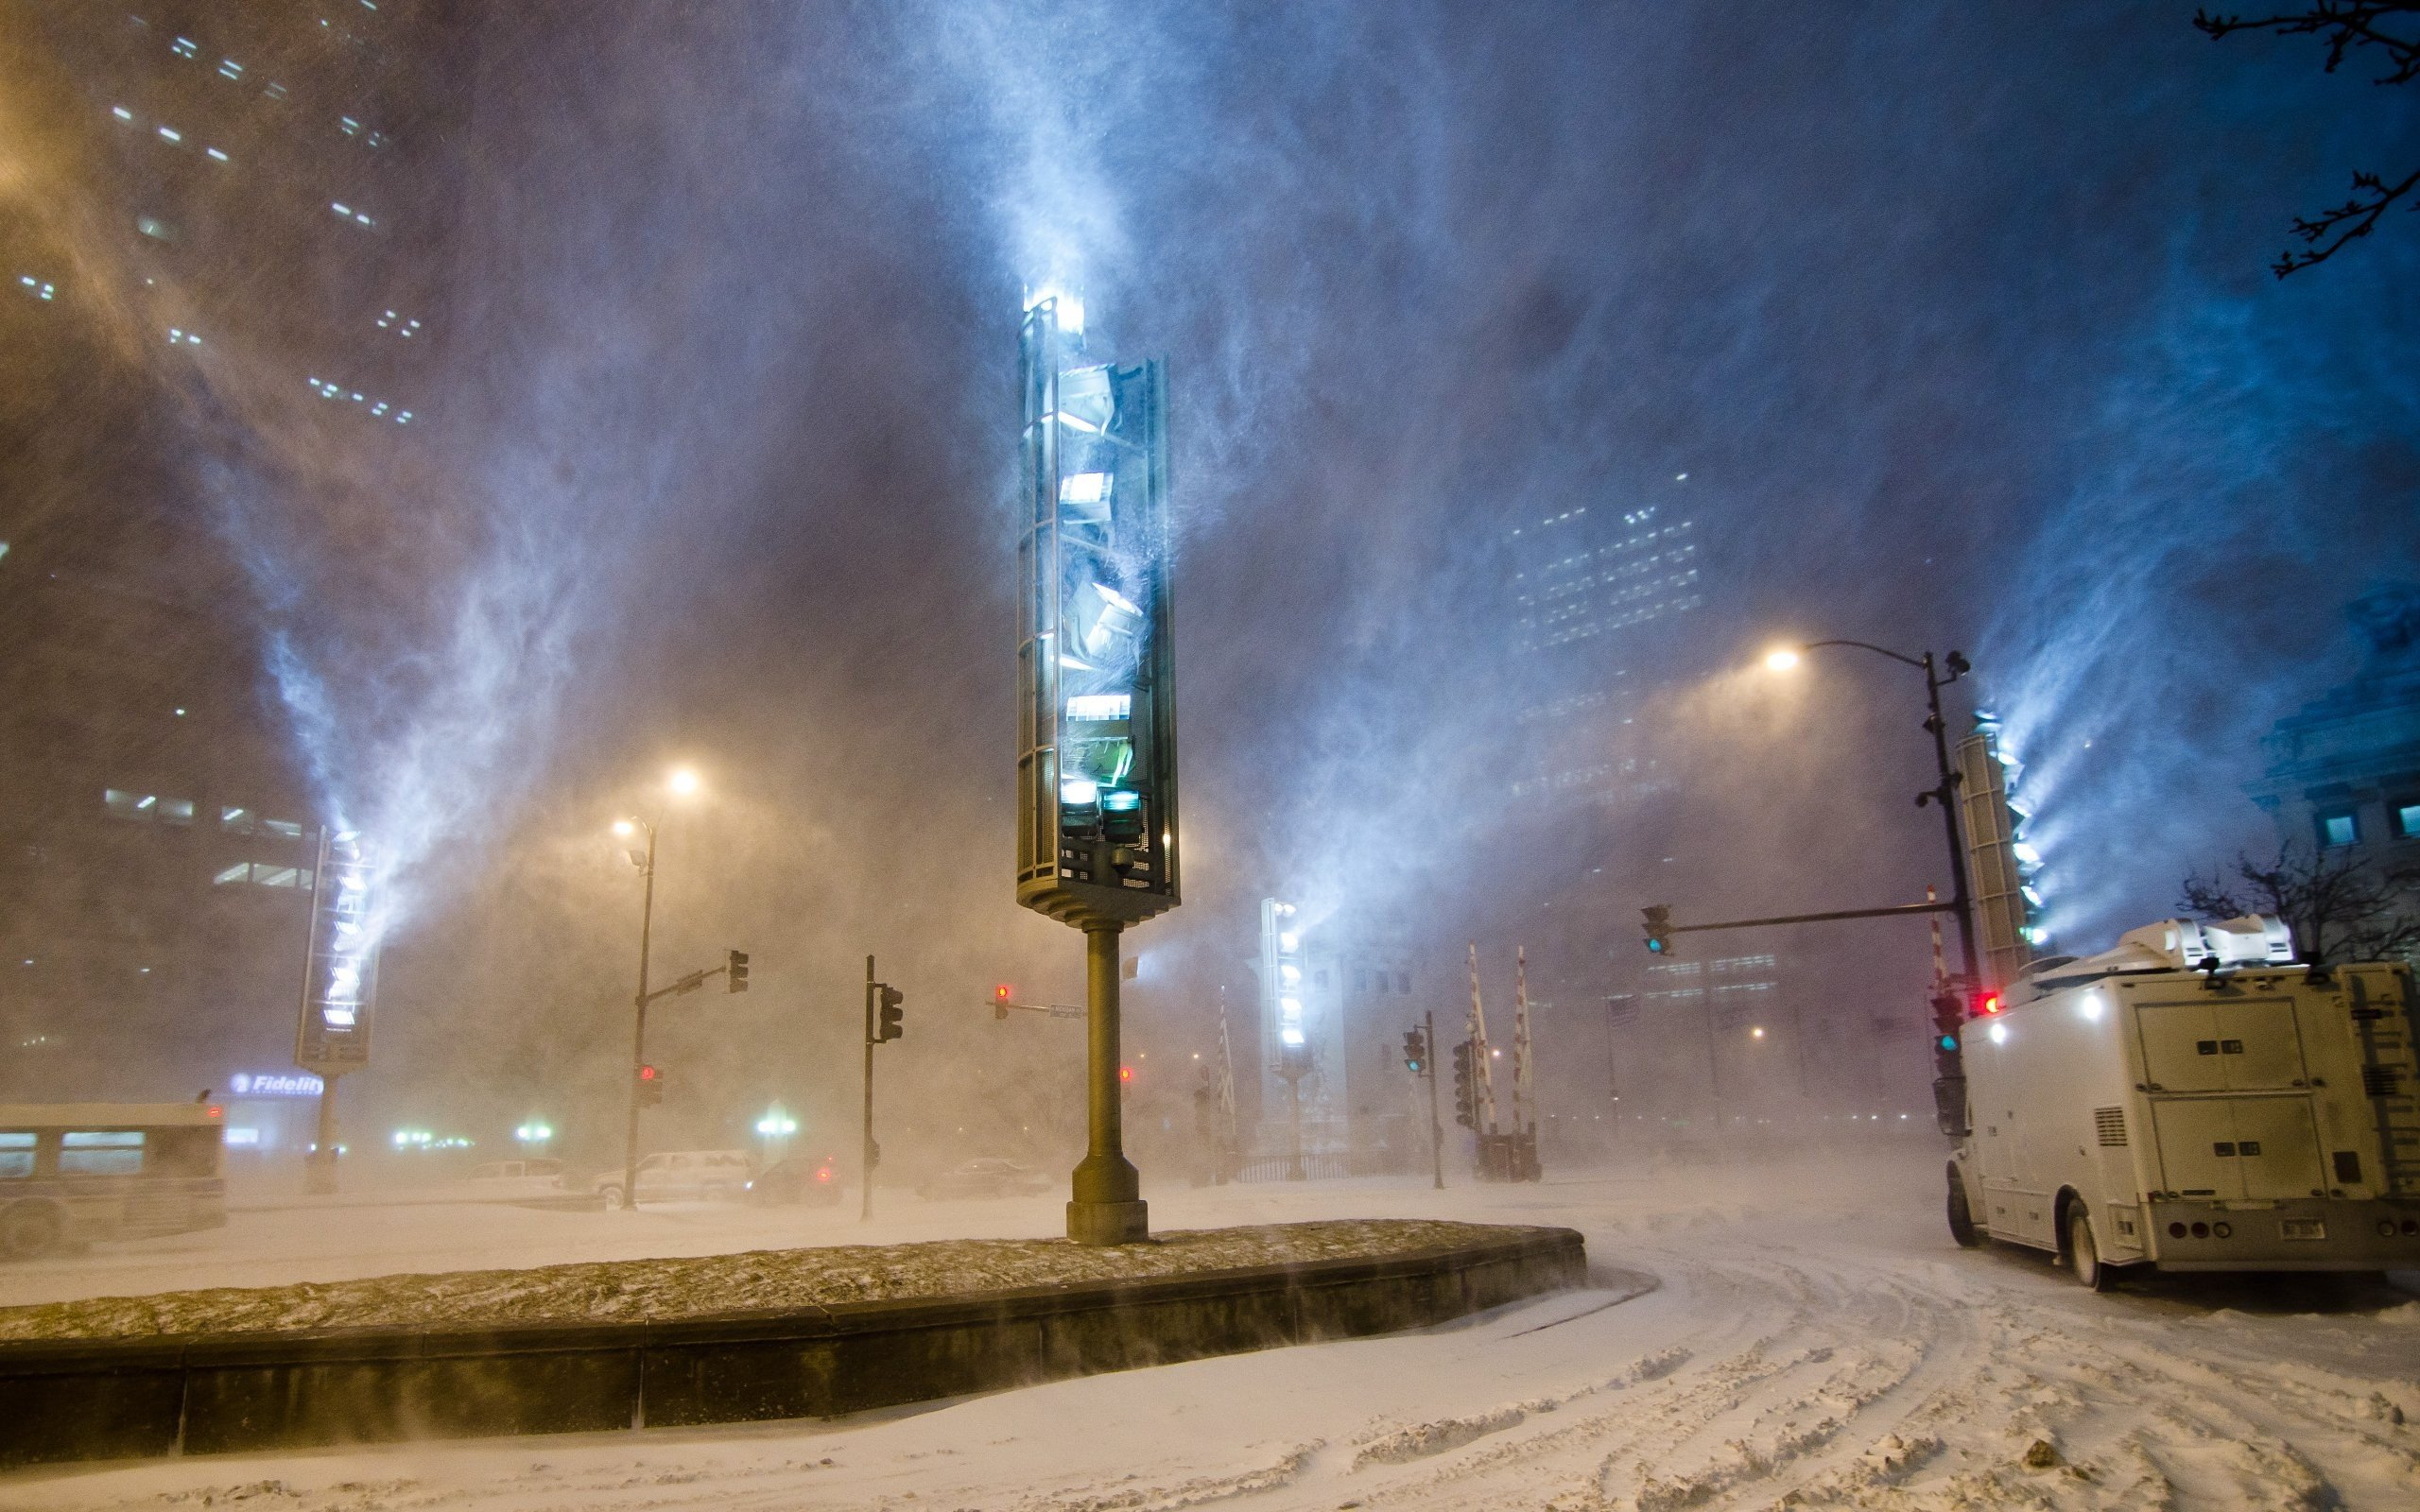 Snow Winter Lights Night Chicago Hd Wallpapers Desktop And